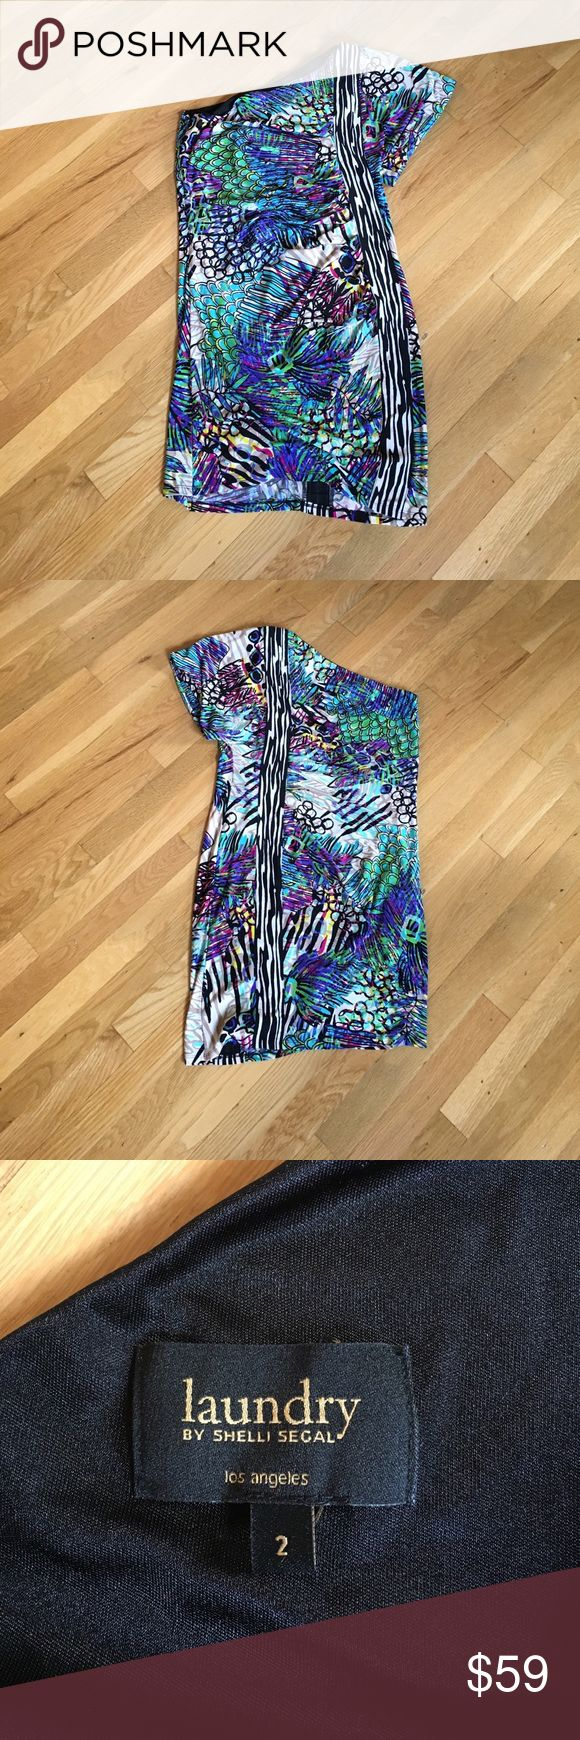 Laundry by Shelli segal one shoulder dress size 2 Laundry by Shelli segal one shoulder dress size 2. 95% polyester 5% spandex, 100% black polyester lining. Dryclean. Used. Laundry by Shelli Segal Dresses One Shoulder